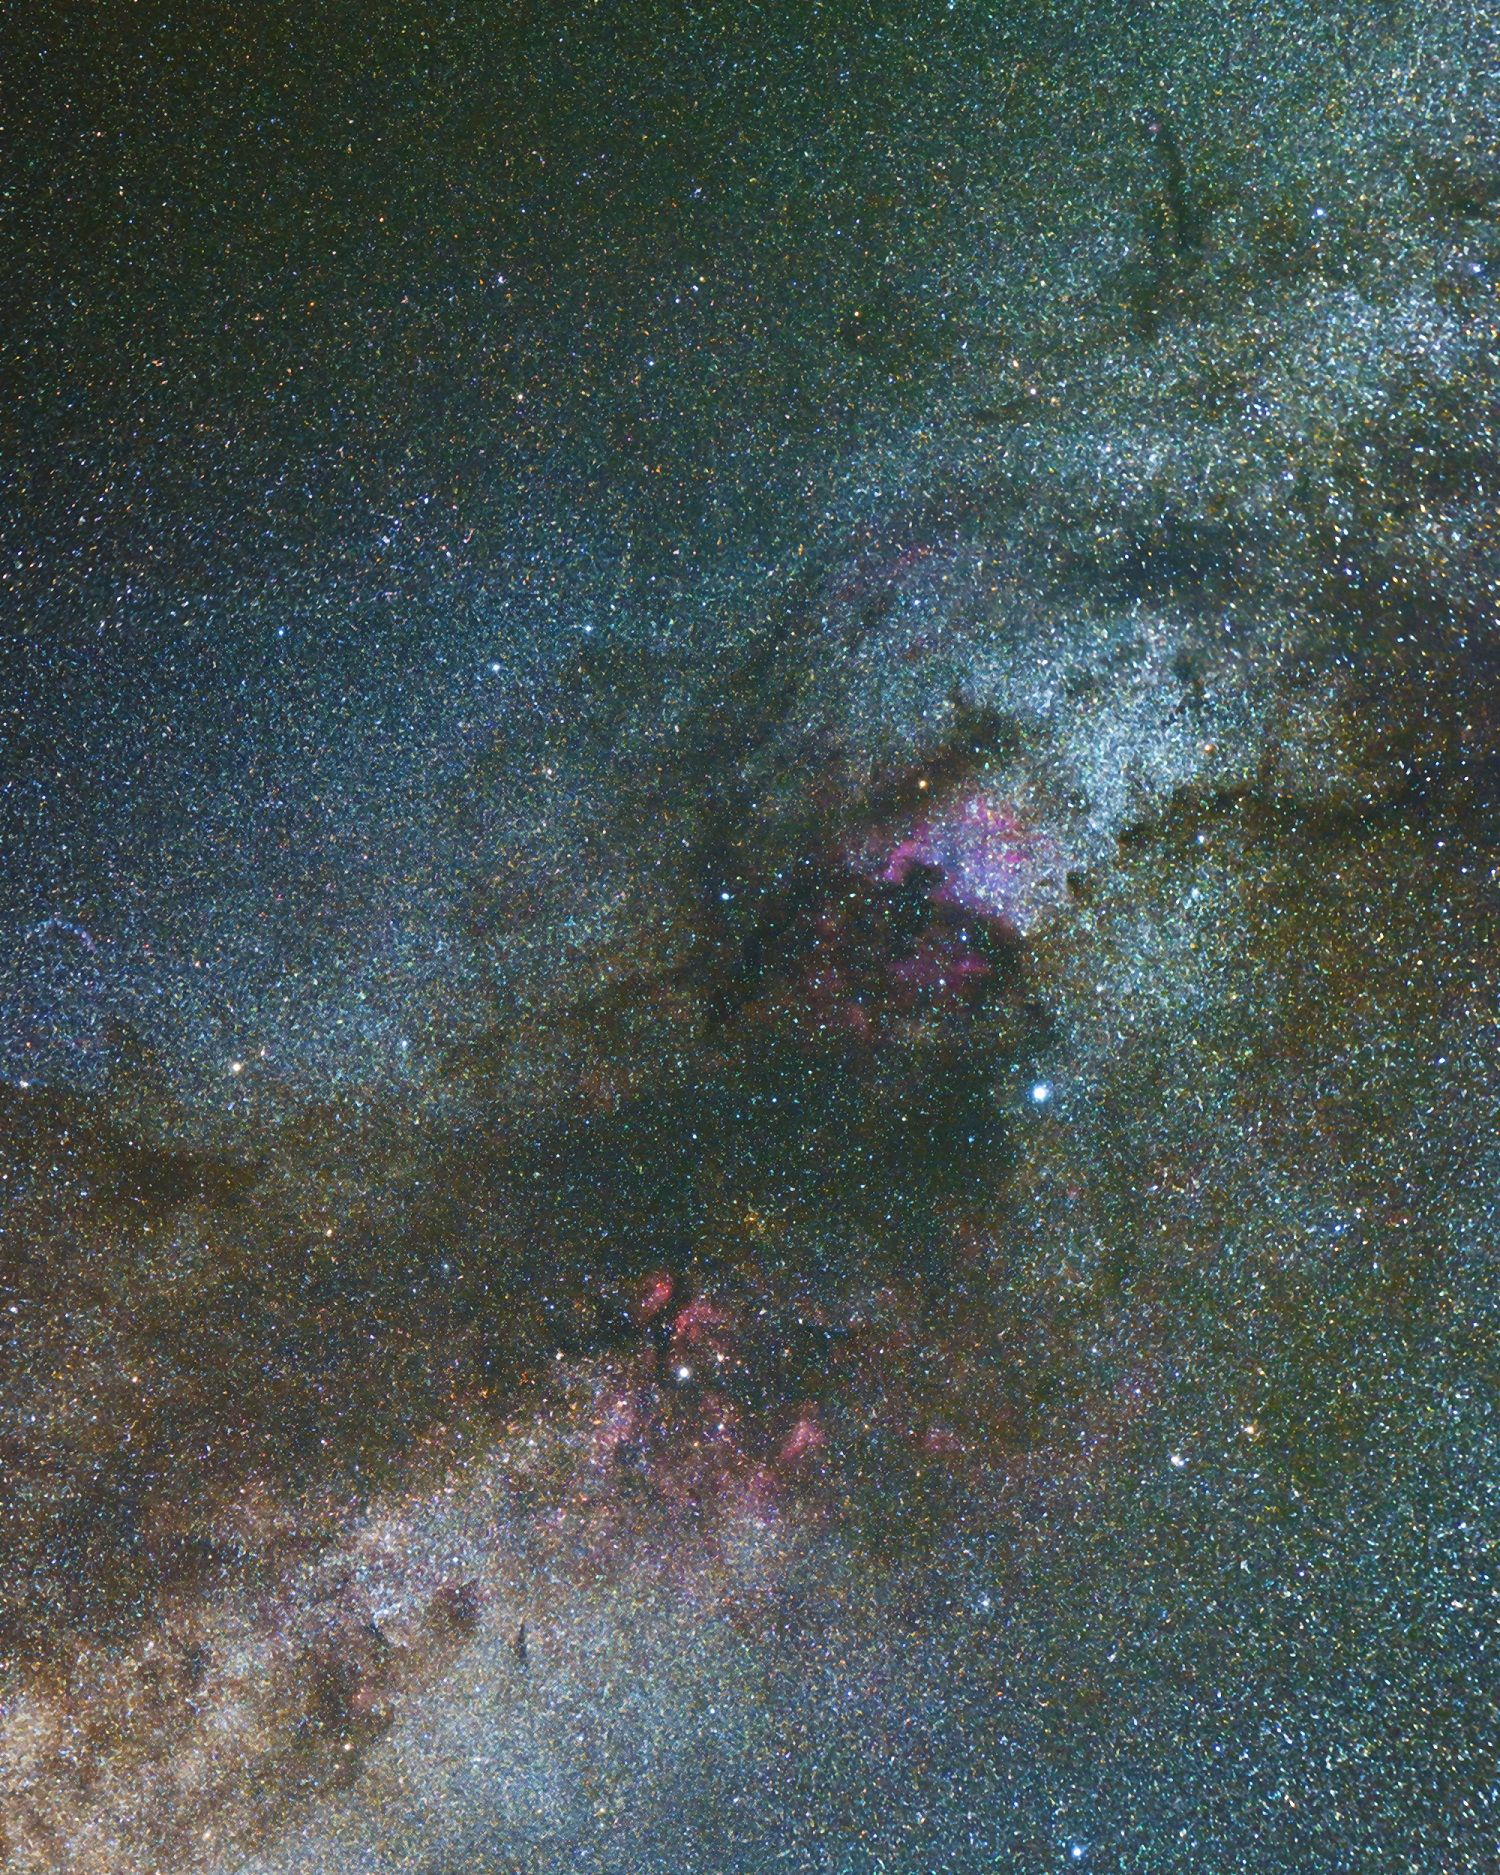 The Cygnus constellation in our Milky Way  #astrophotography #telescope #deepsky #milkyway